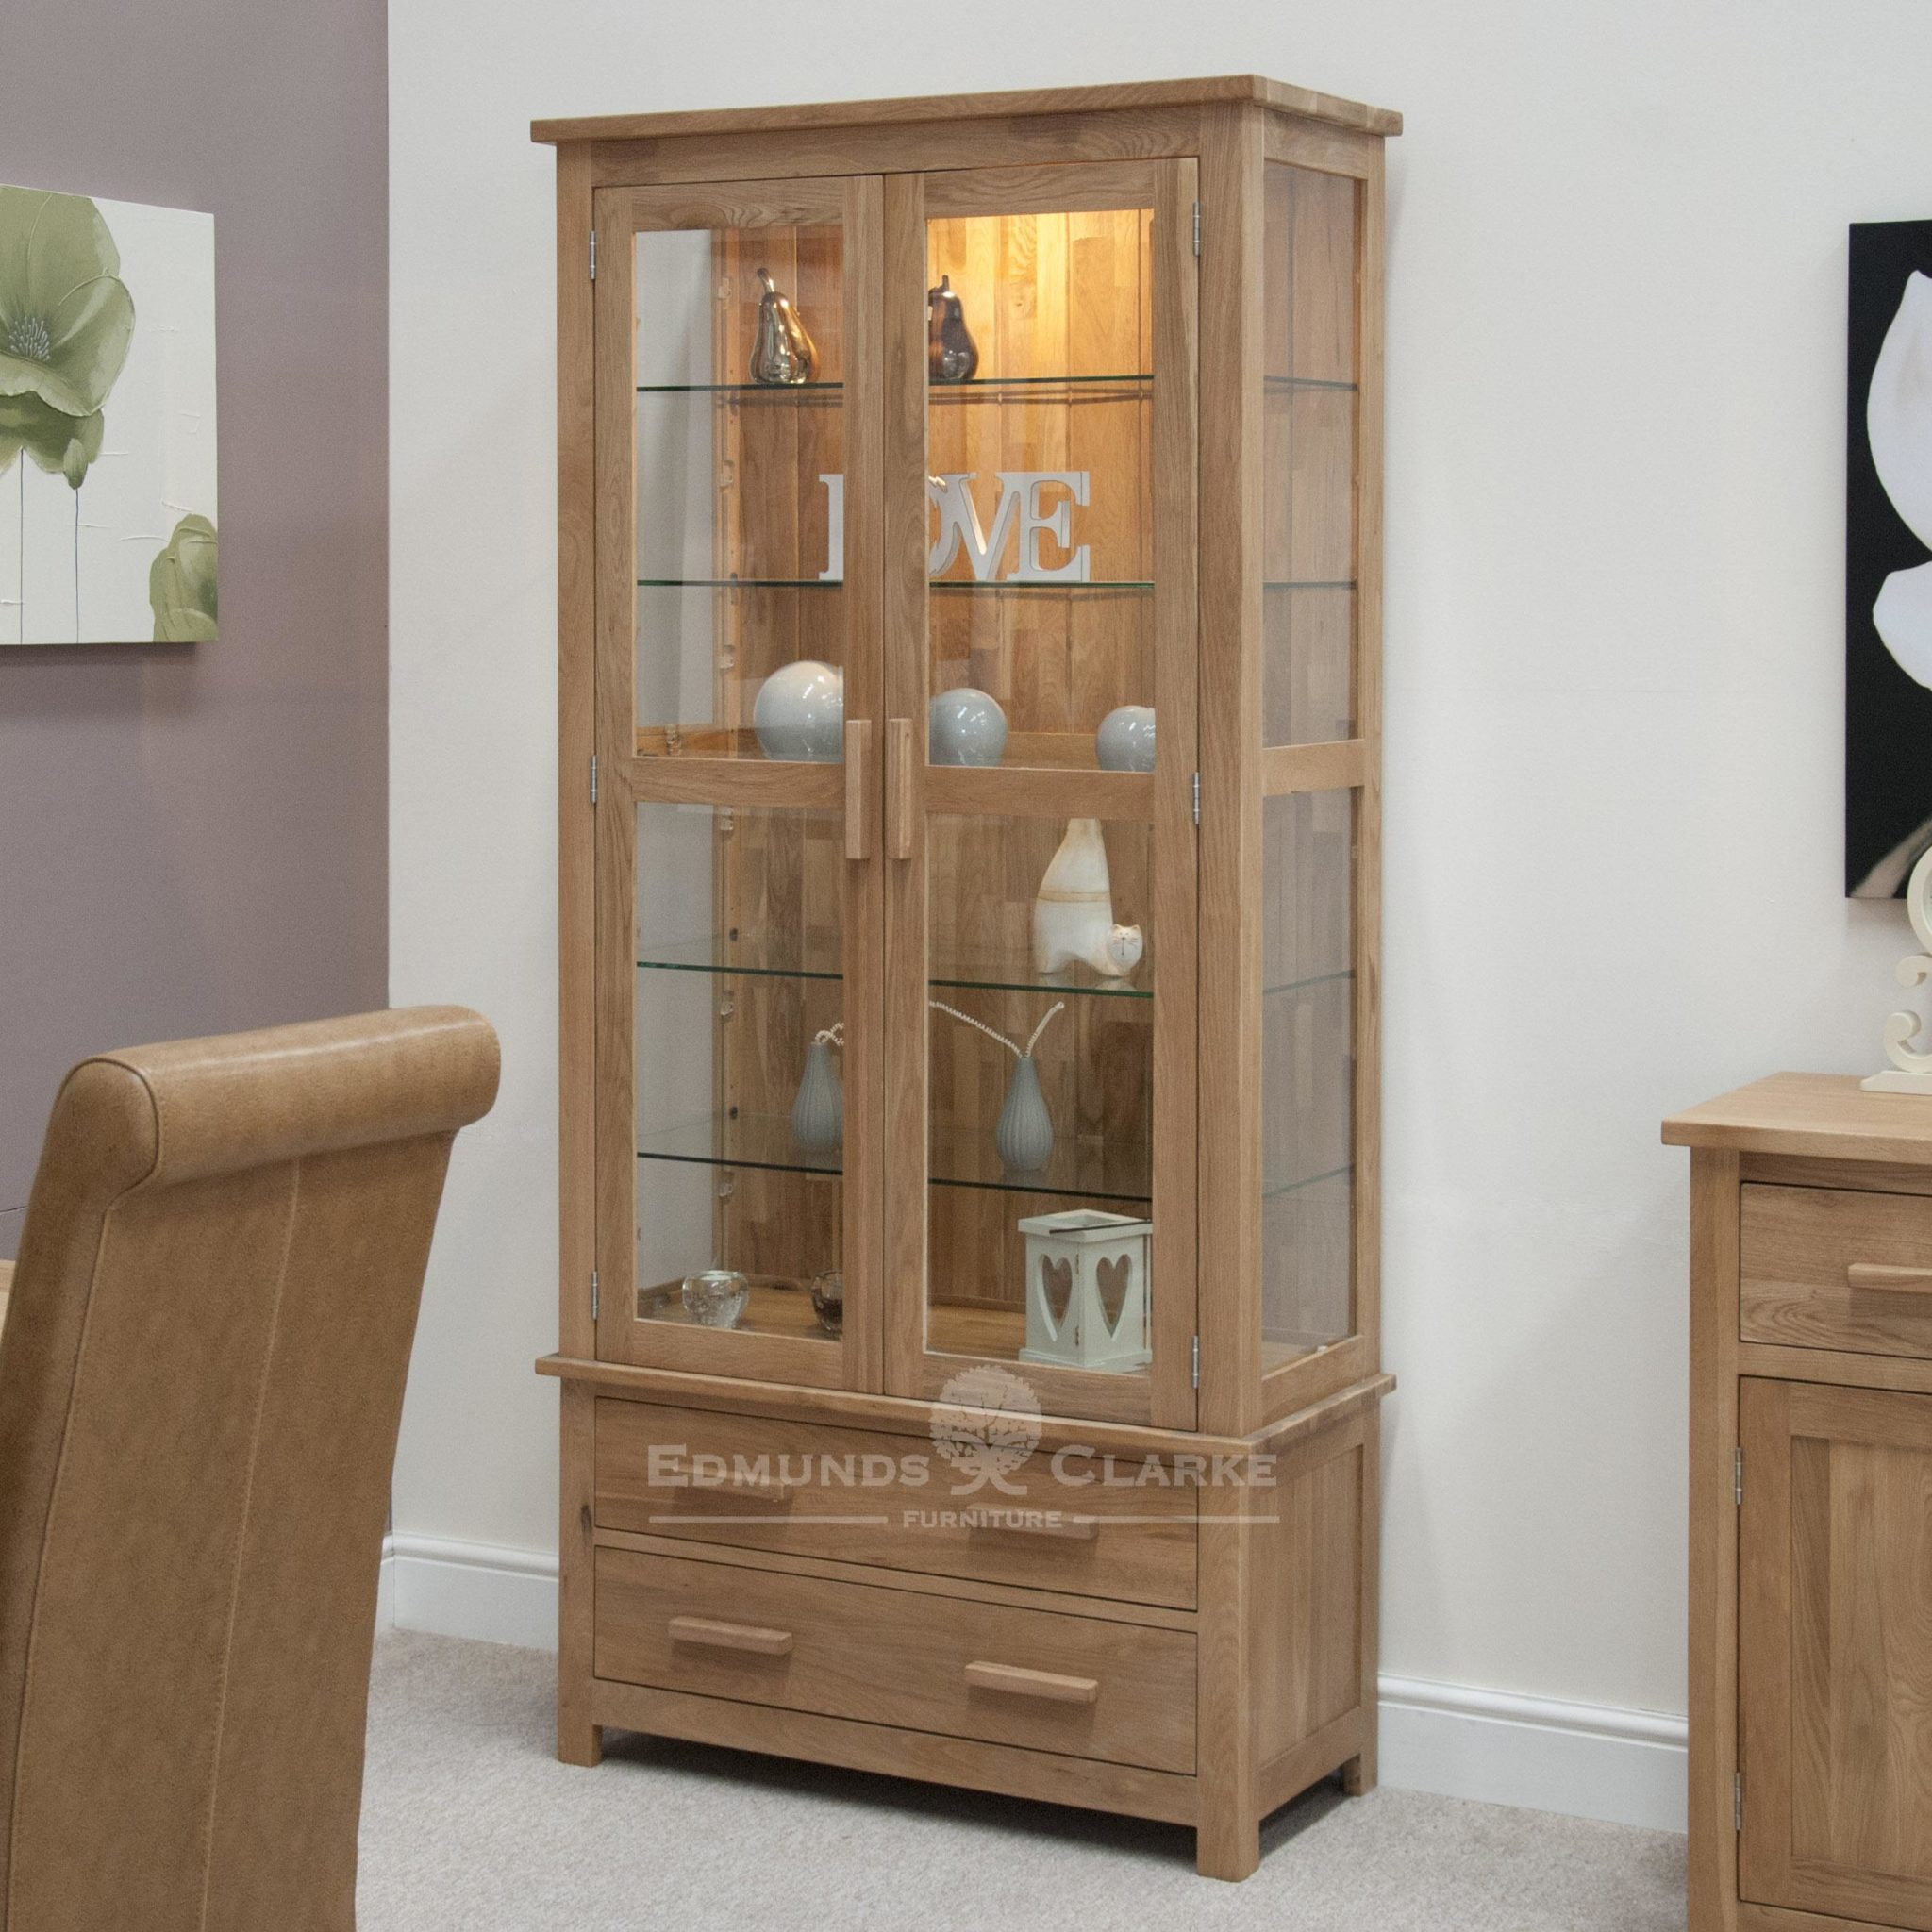 Bury Solid Oak Glass Display Cabinet, bevelled glass at front and sides with LED light to show your treasures off. two handy drawers at bottom, chrome or oak bar handles available